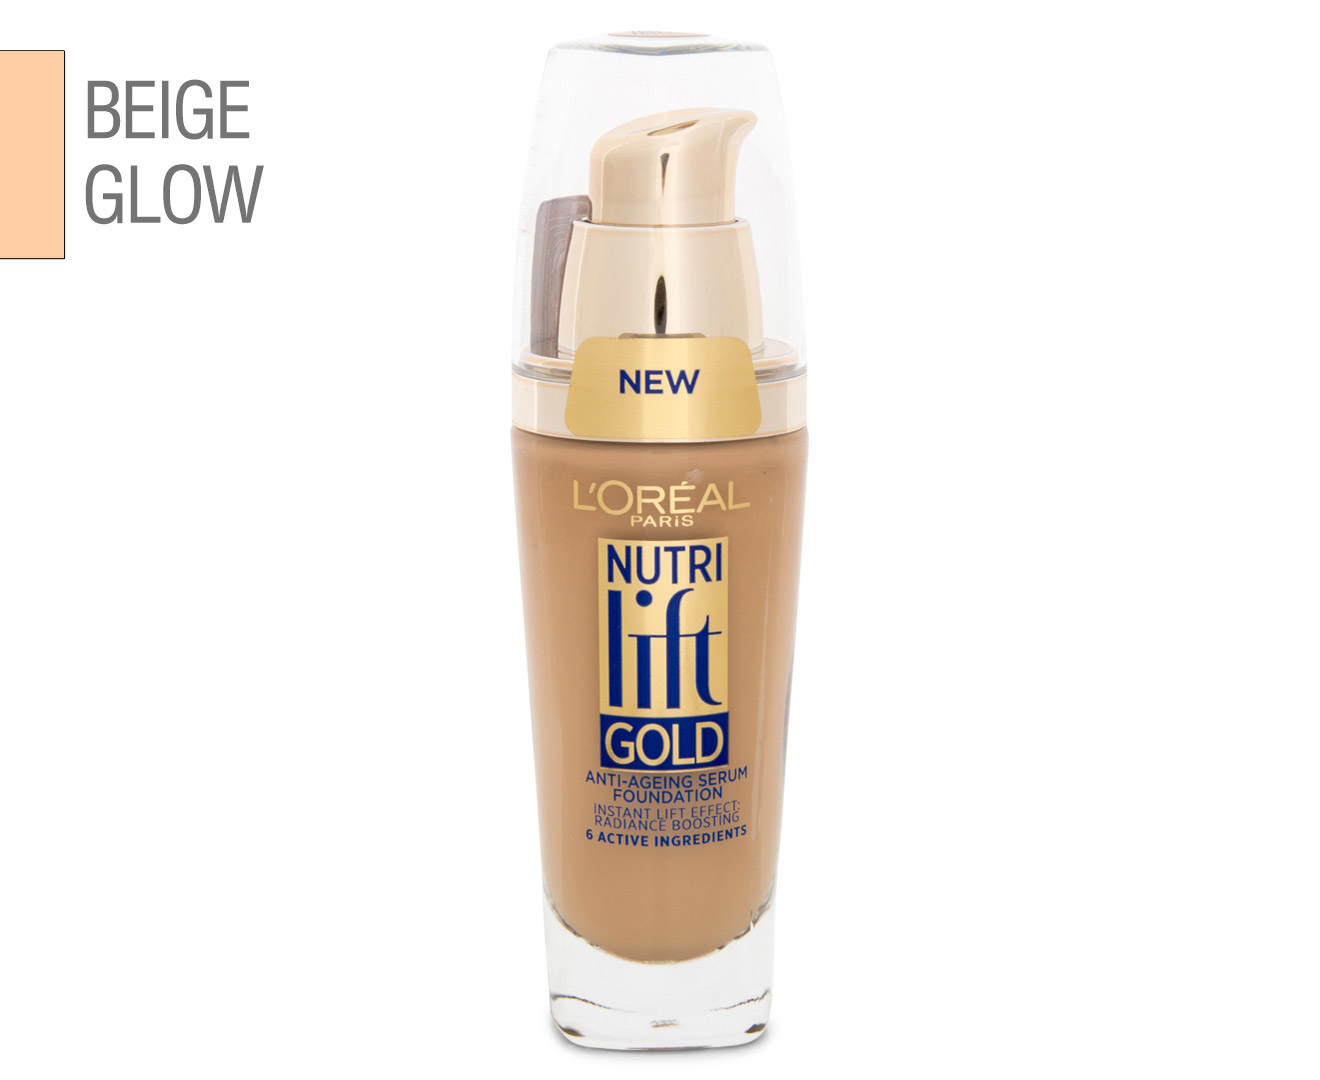 L'Oréal NutriLift Gold Foundation 25mL